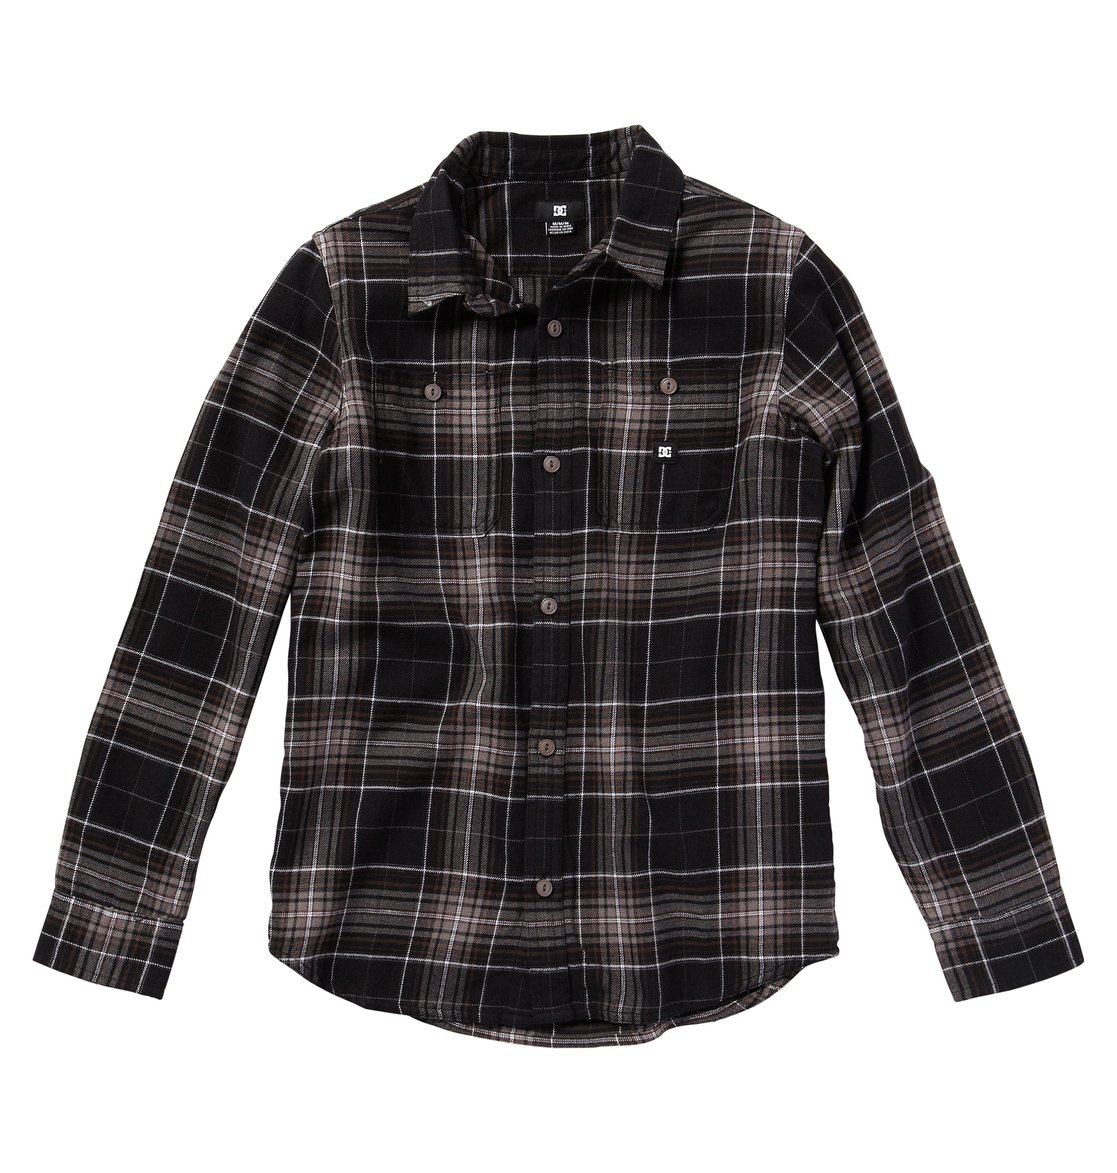 4e6c7fe60 0 Boy's Kingsmen Shirt ADBWT00019 DC Shoes